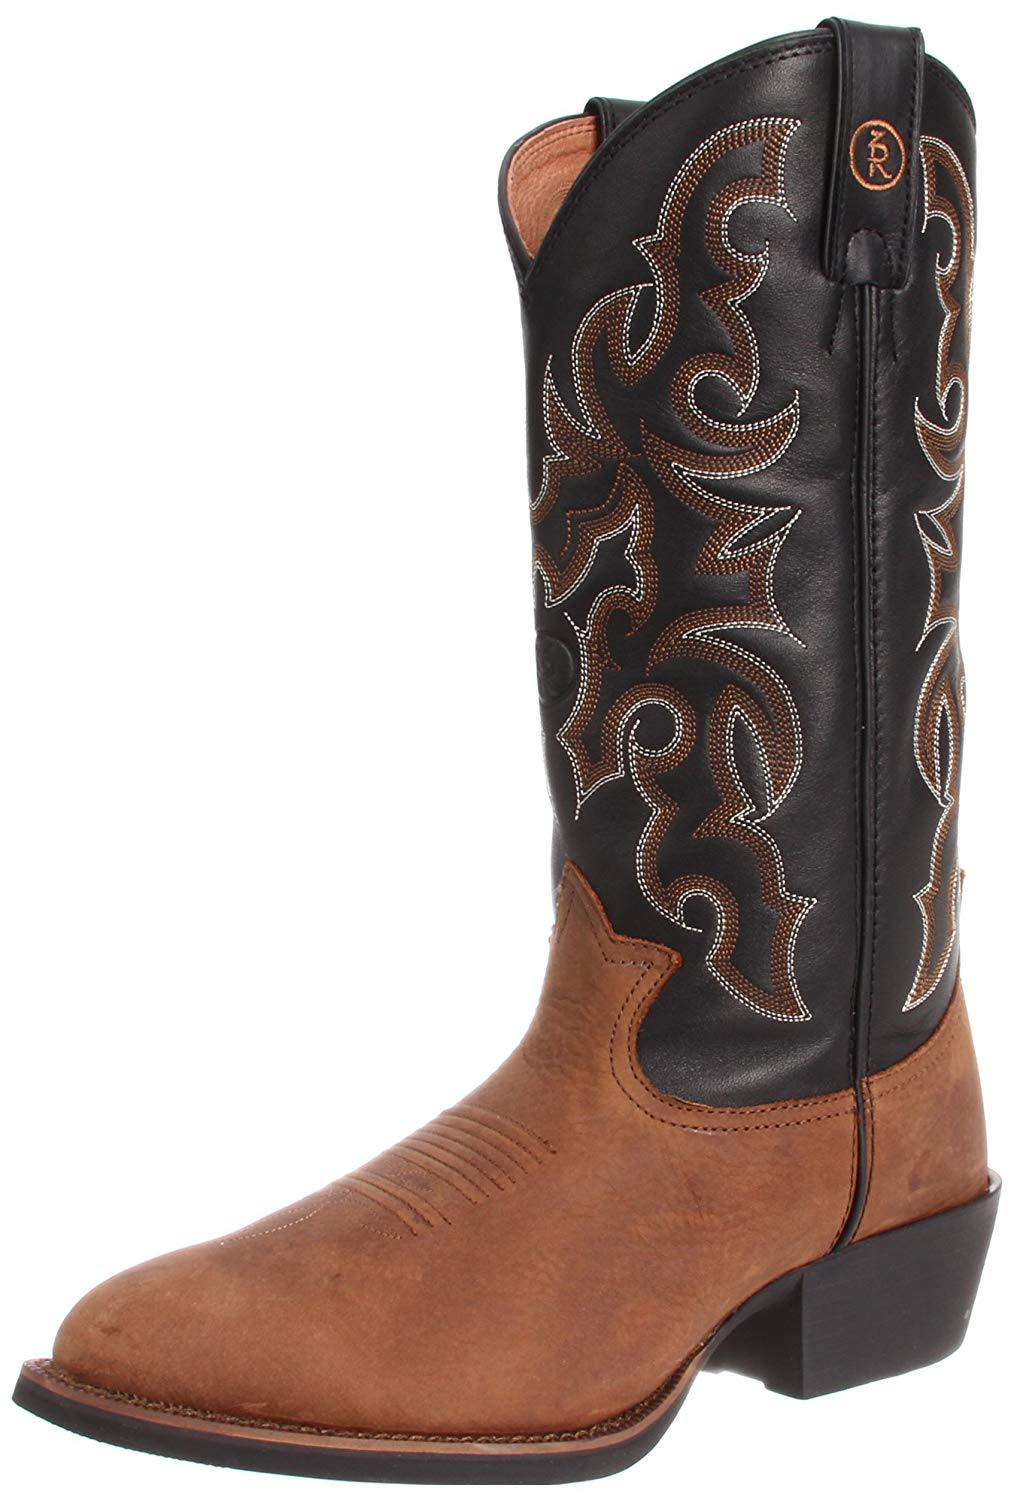 Tony Lama Boots Men's RR4001 Boot